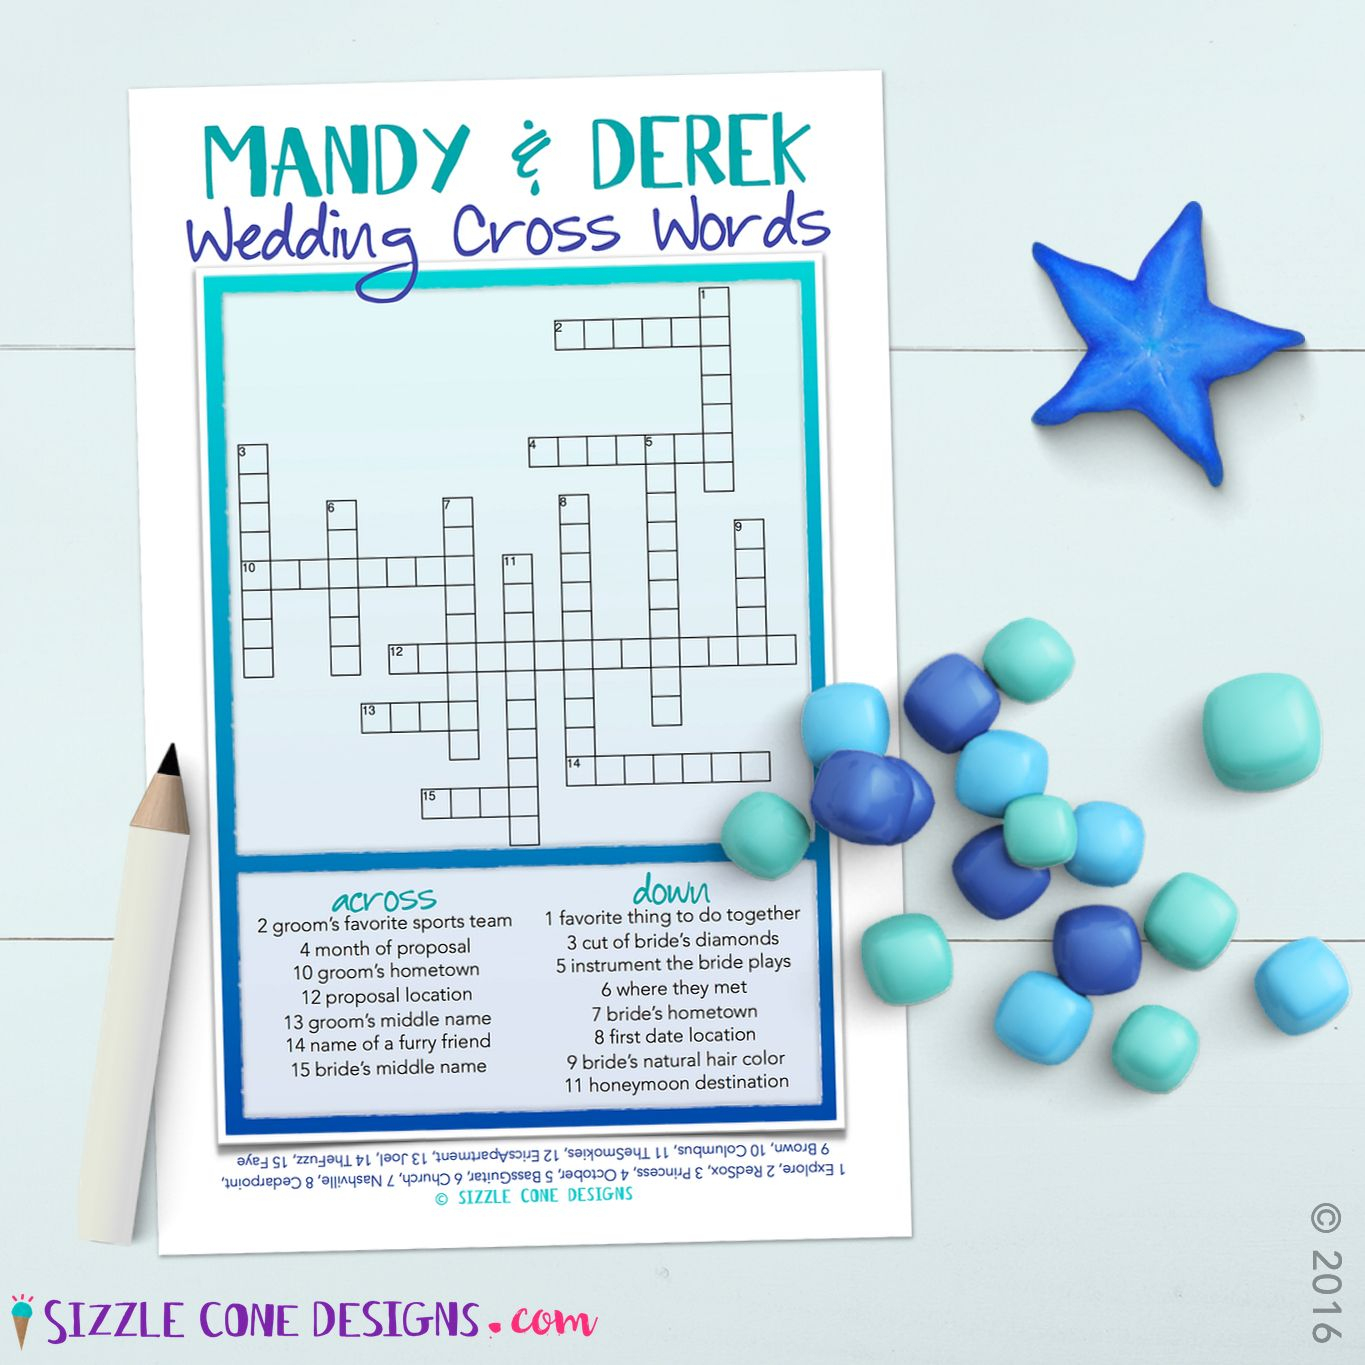 Custom Wedding Crossword Puzzle Game Printable #219 | Member Board - Printable Wedding Crossword Puzzle